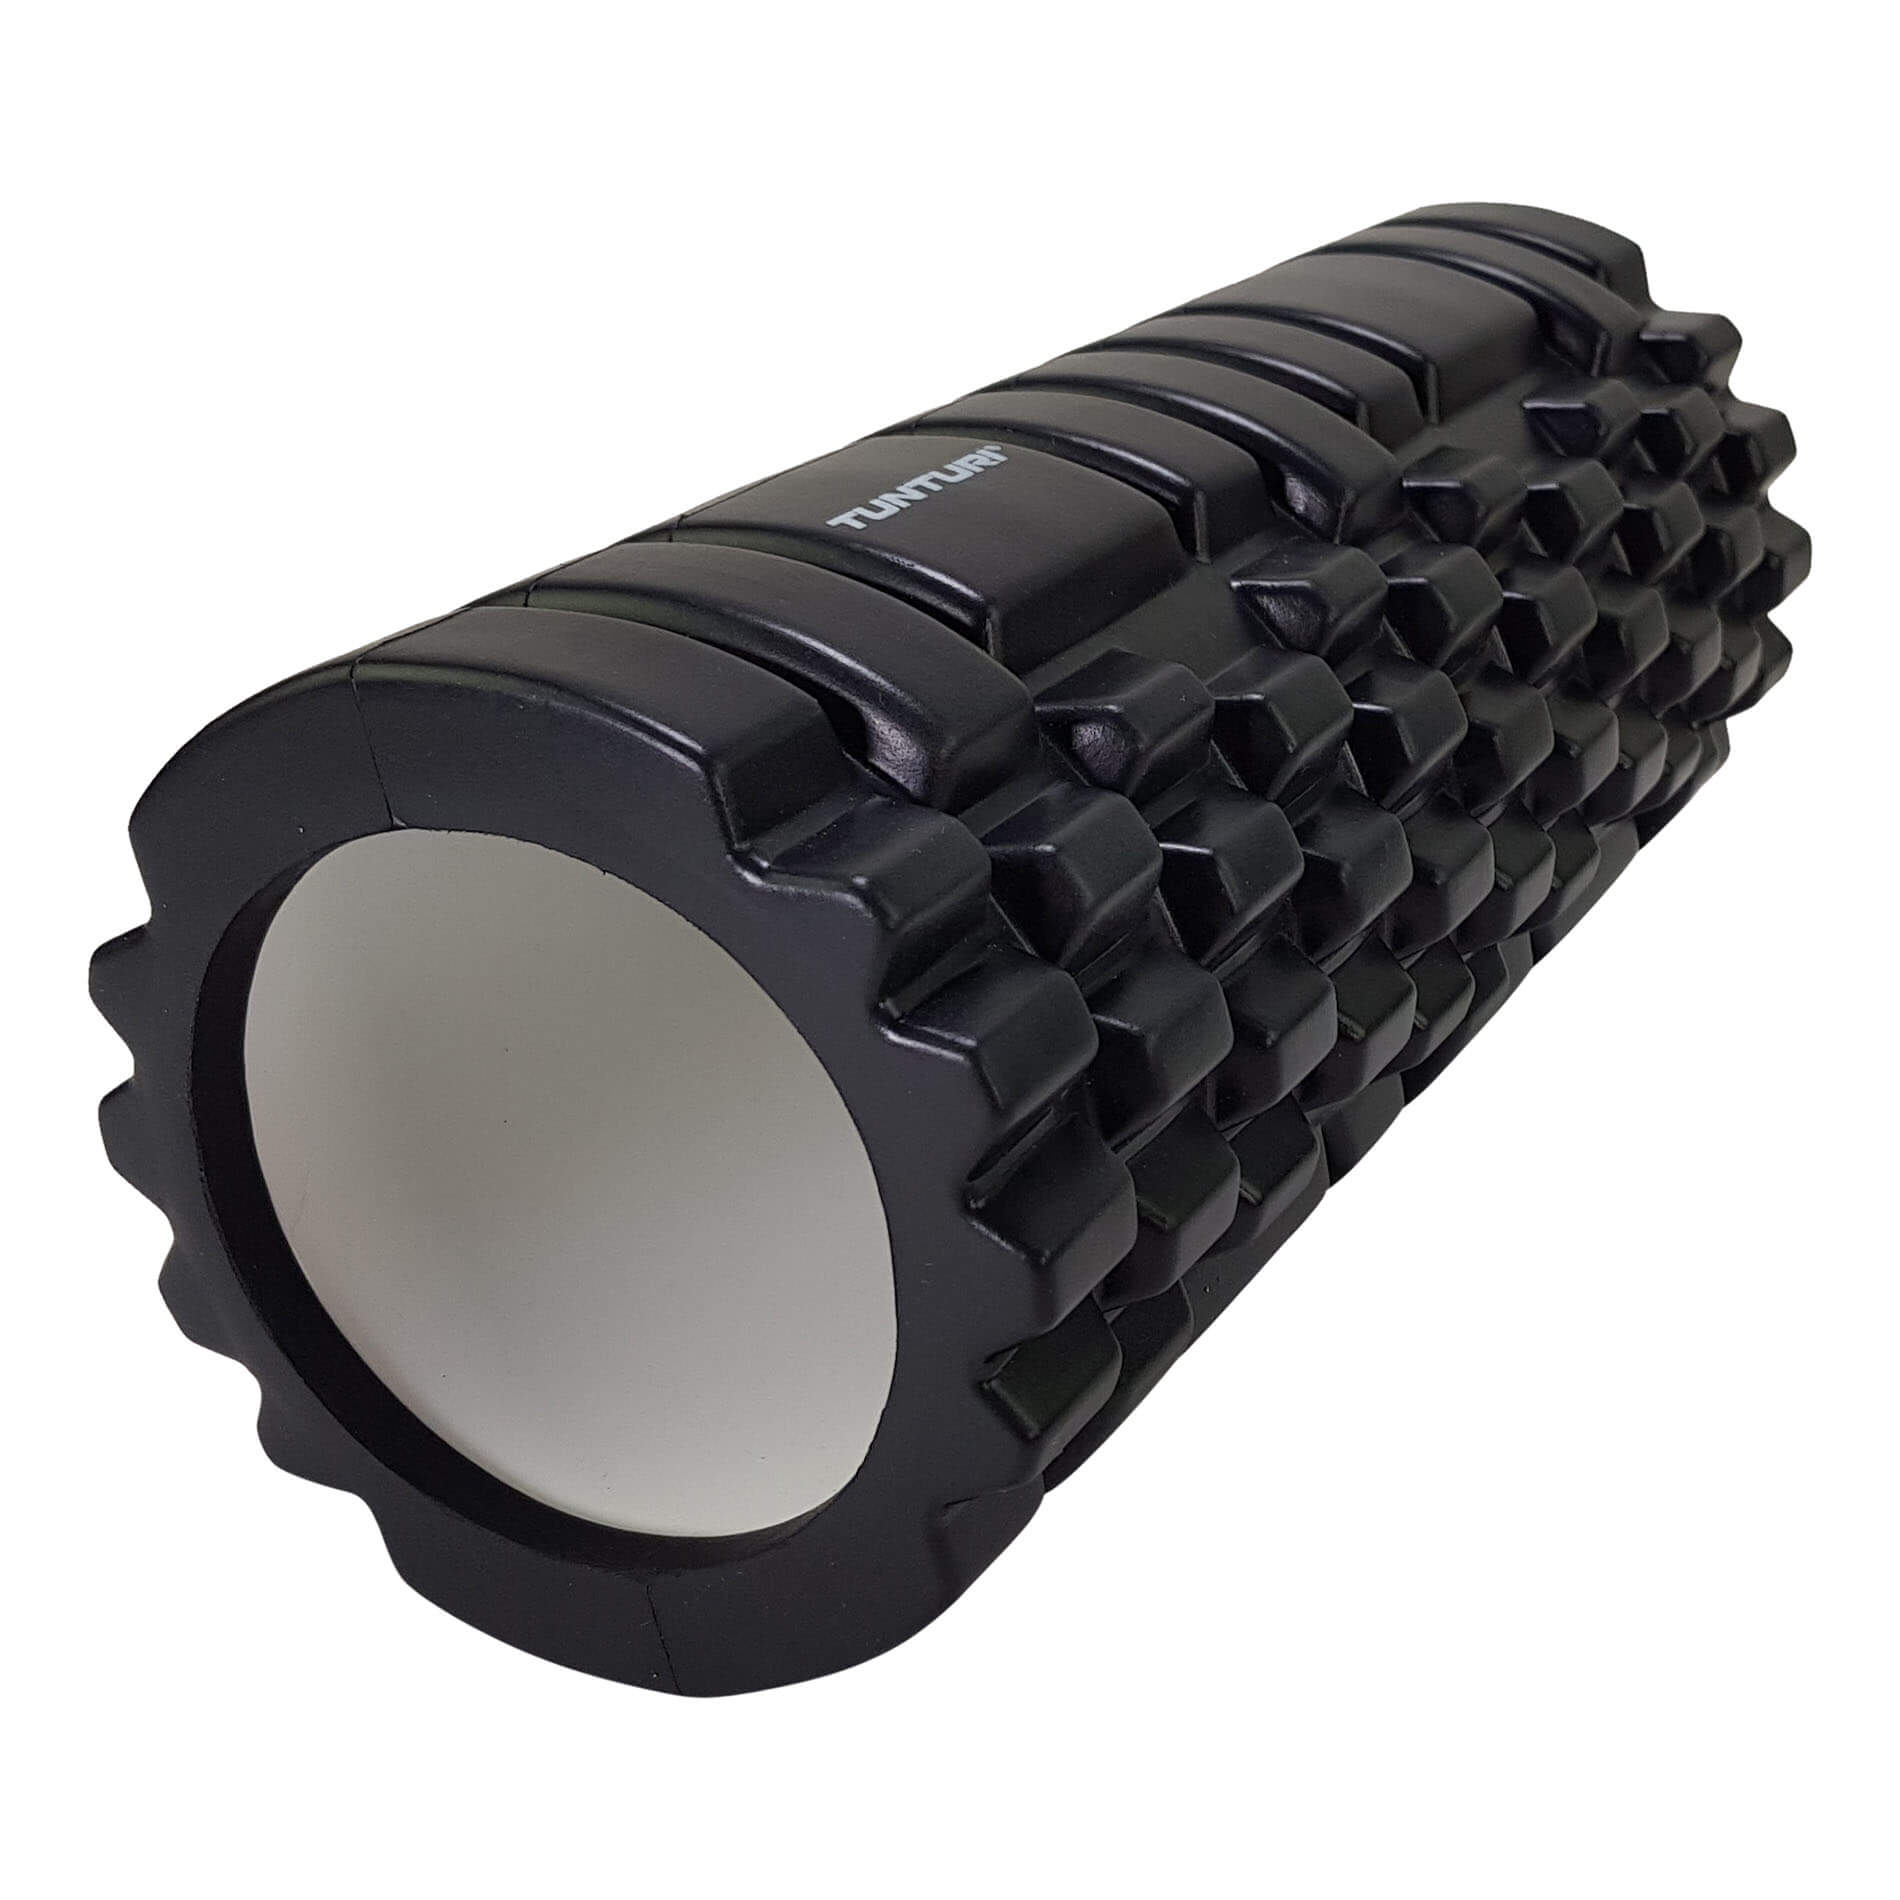 Yoga Grid Foam Roller Massage